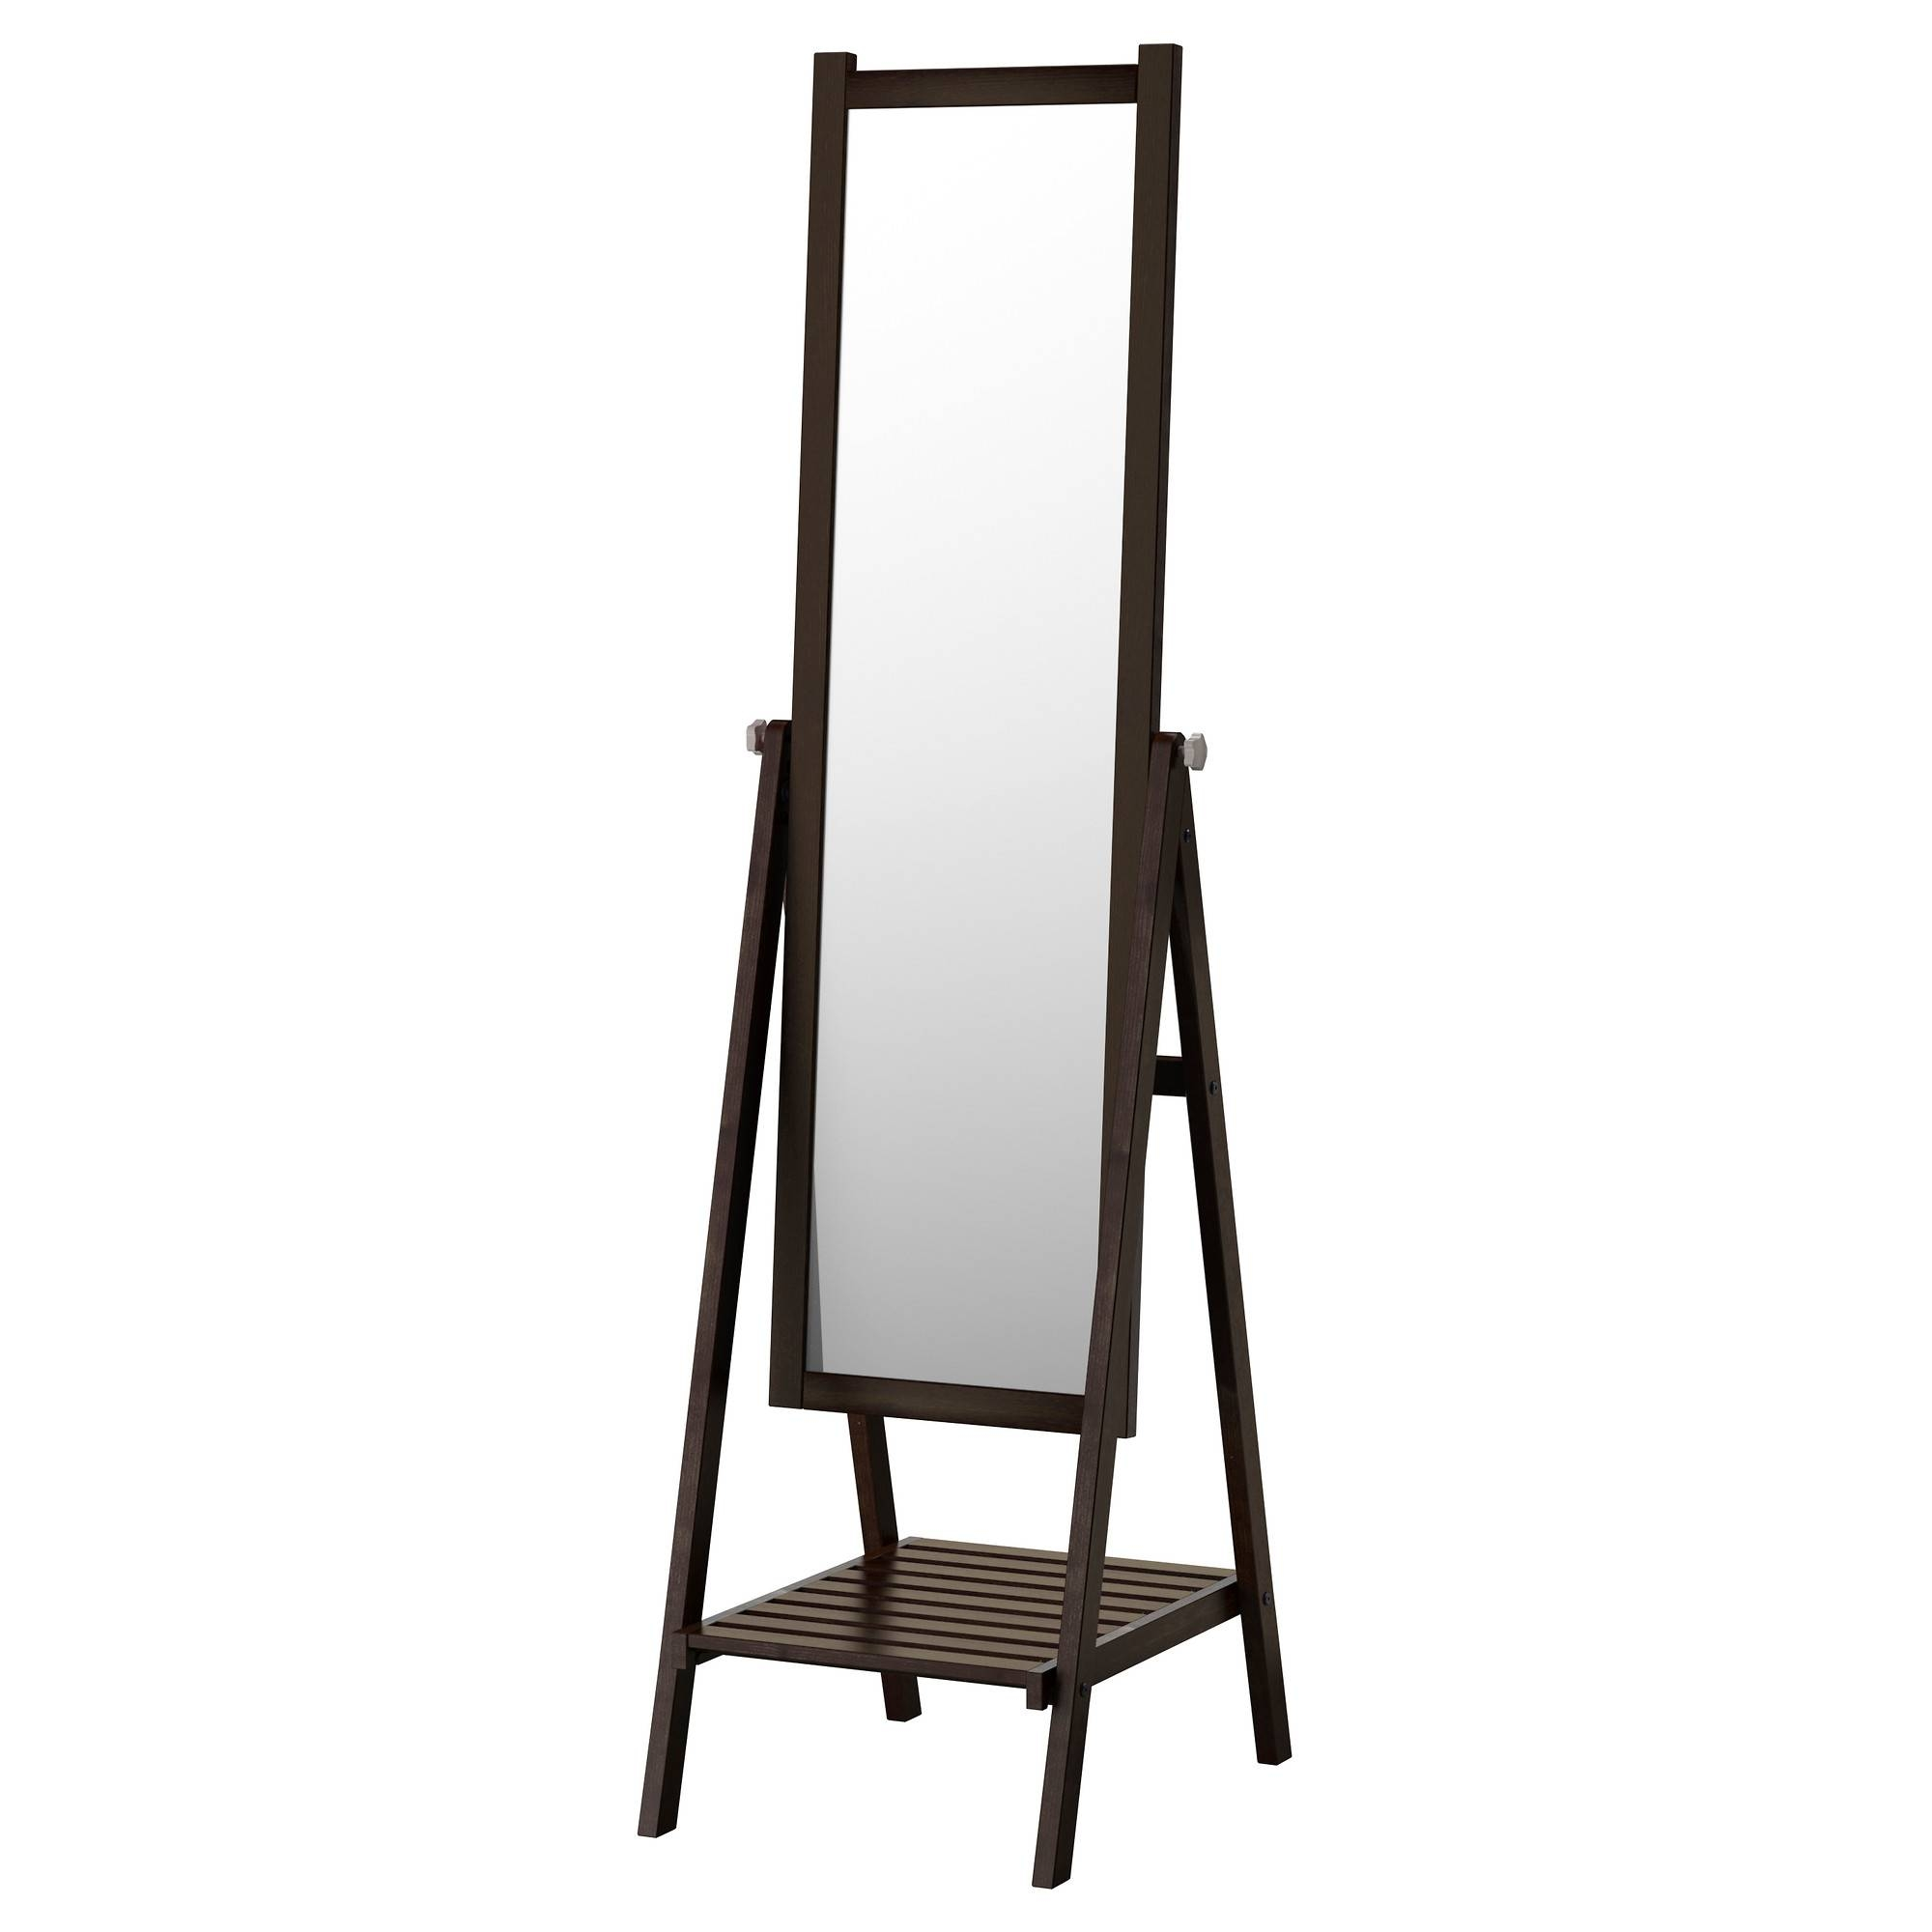 Full-Length Mirrors - Ikea throughout Free Standing Long Mirrors (Image 11 of 15)